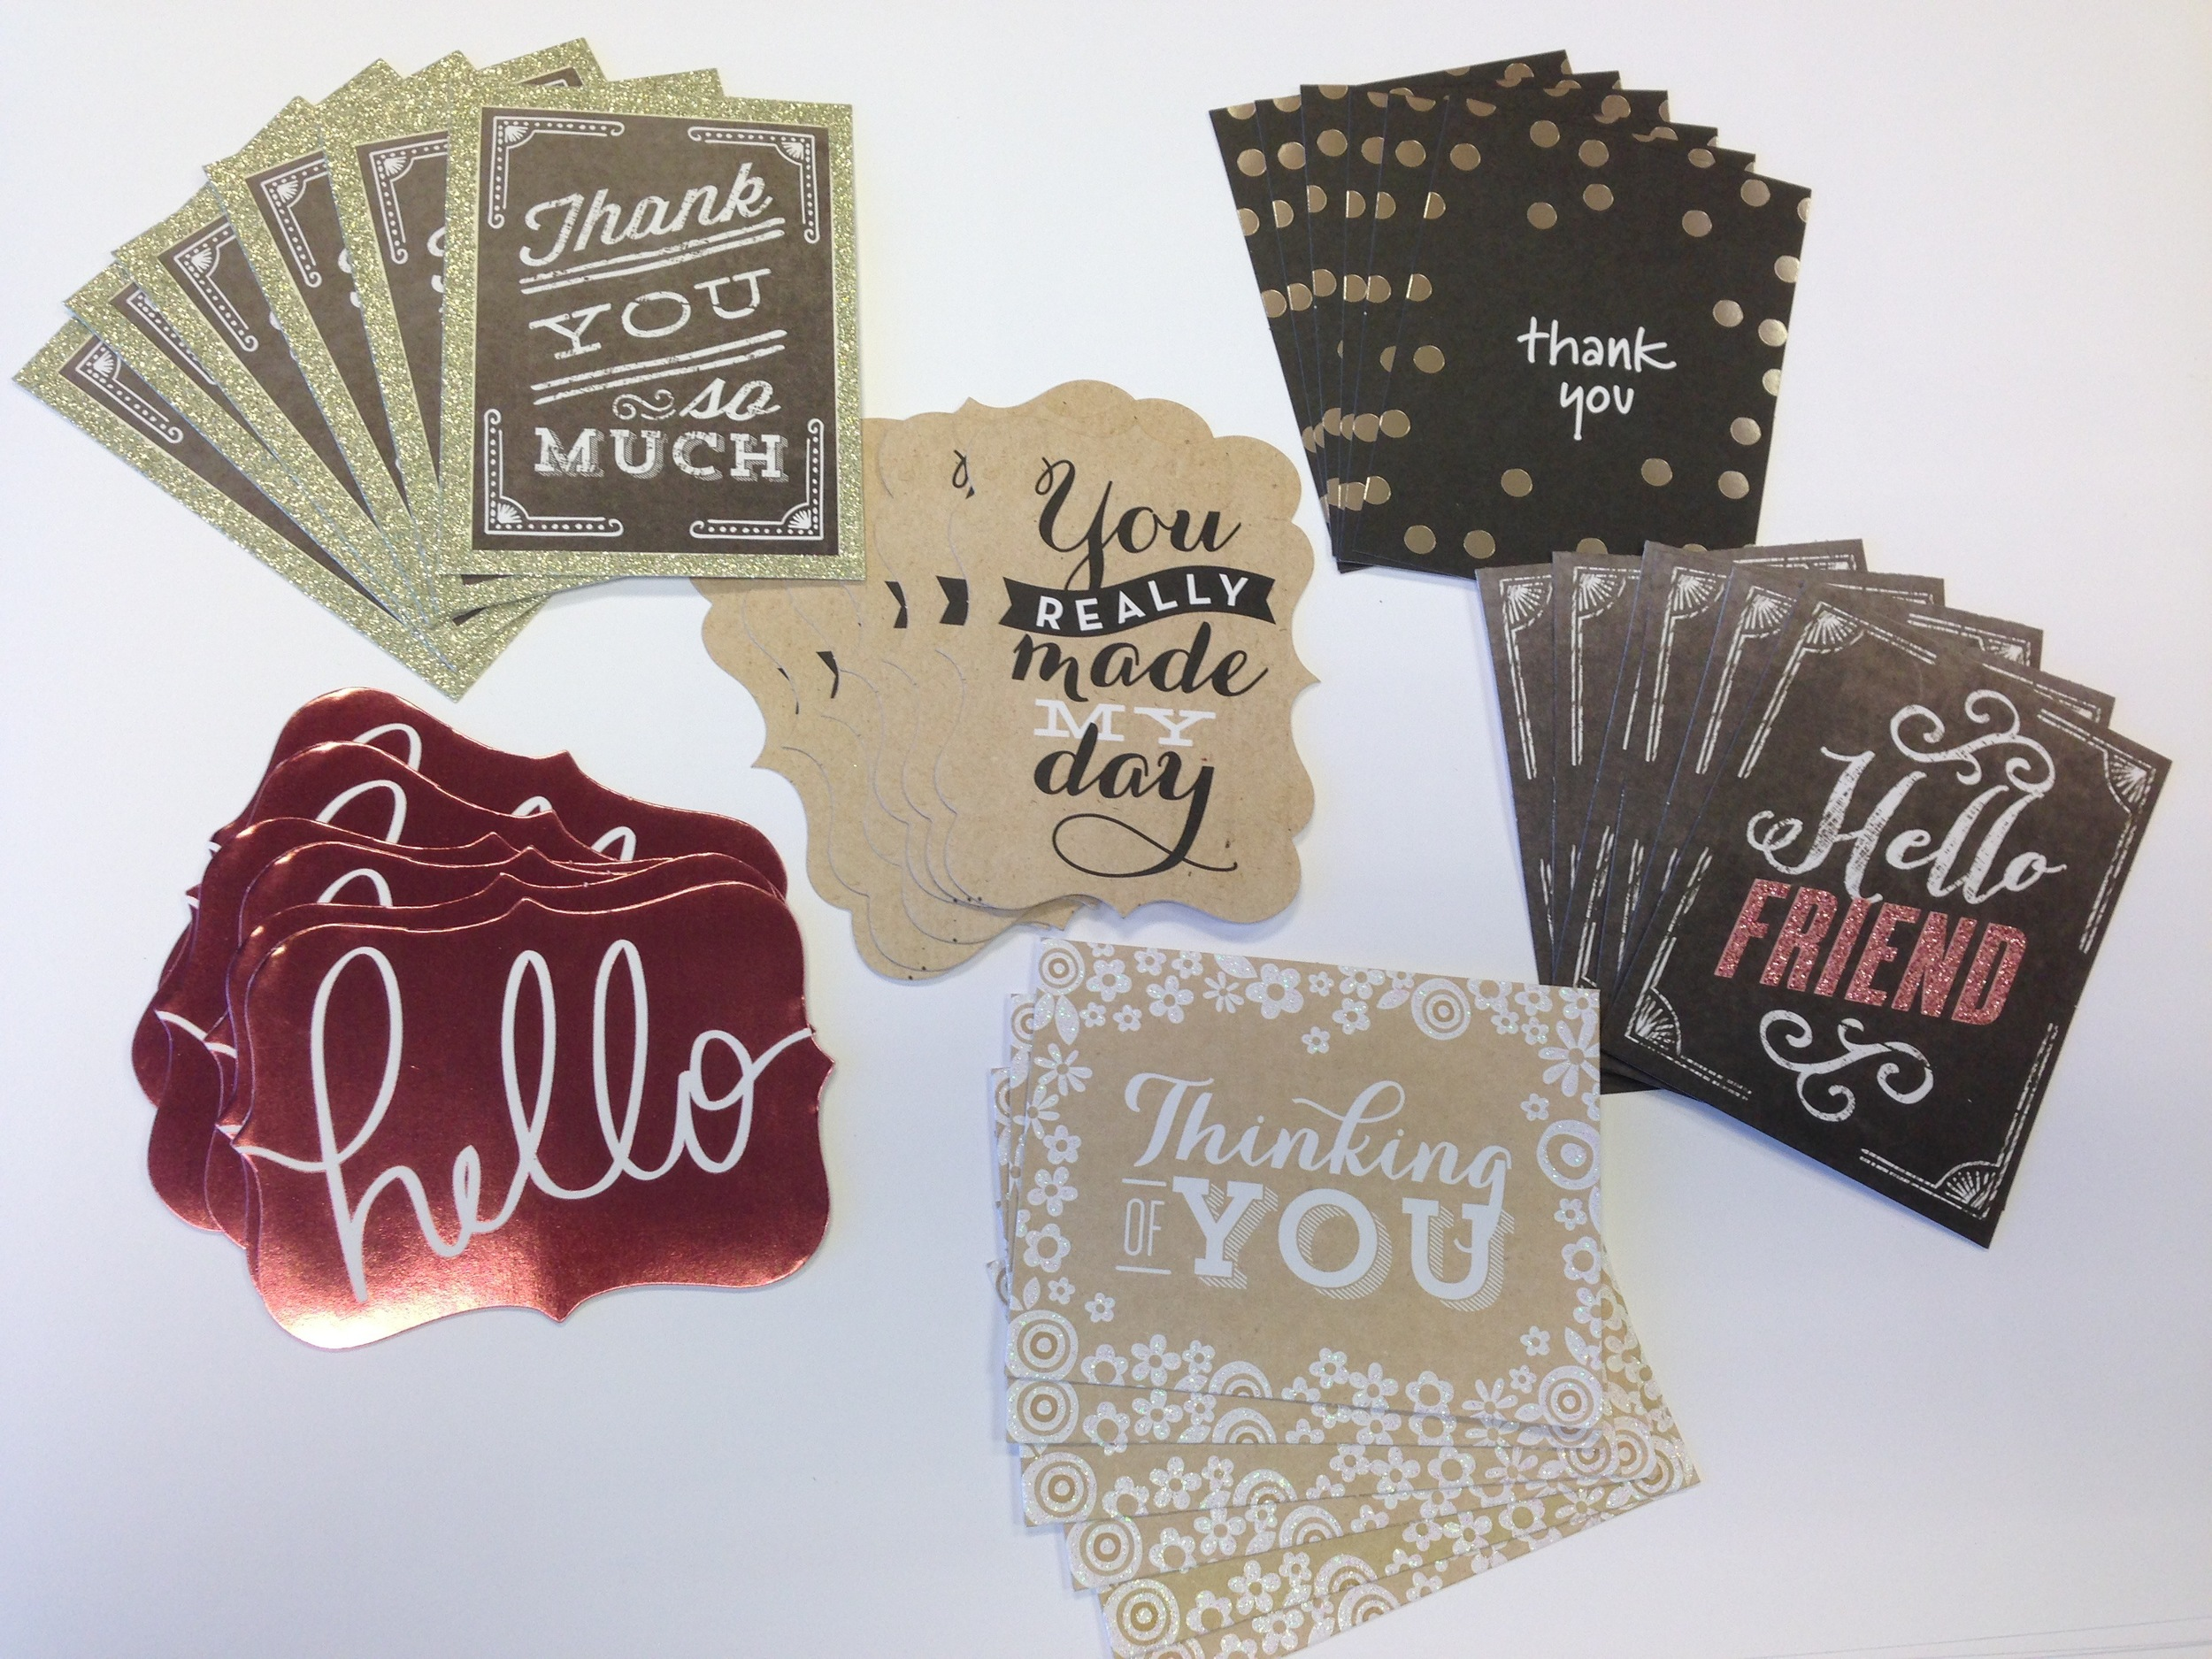 cards in an instant thank you cards.  mambi blog shows you how easy it is to make your own DIY thank you cards.